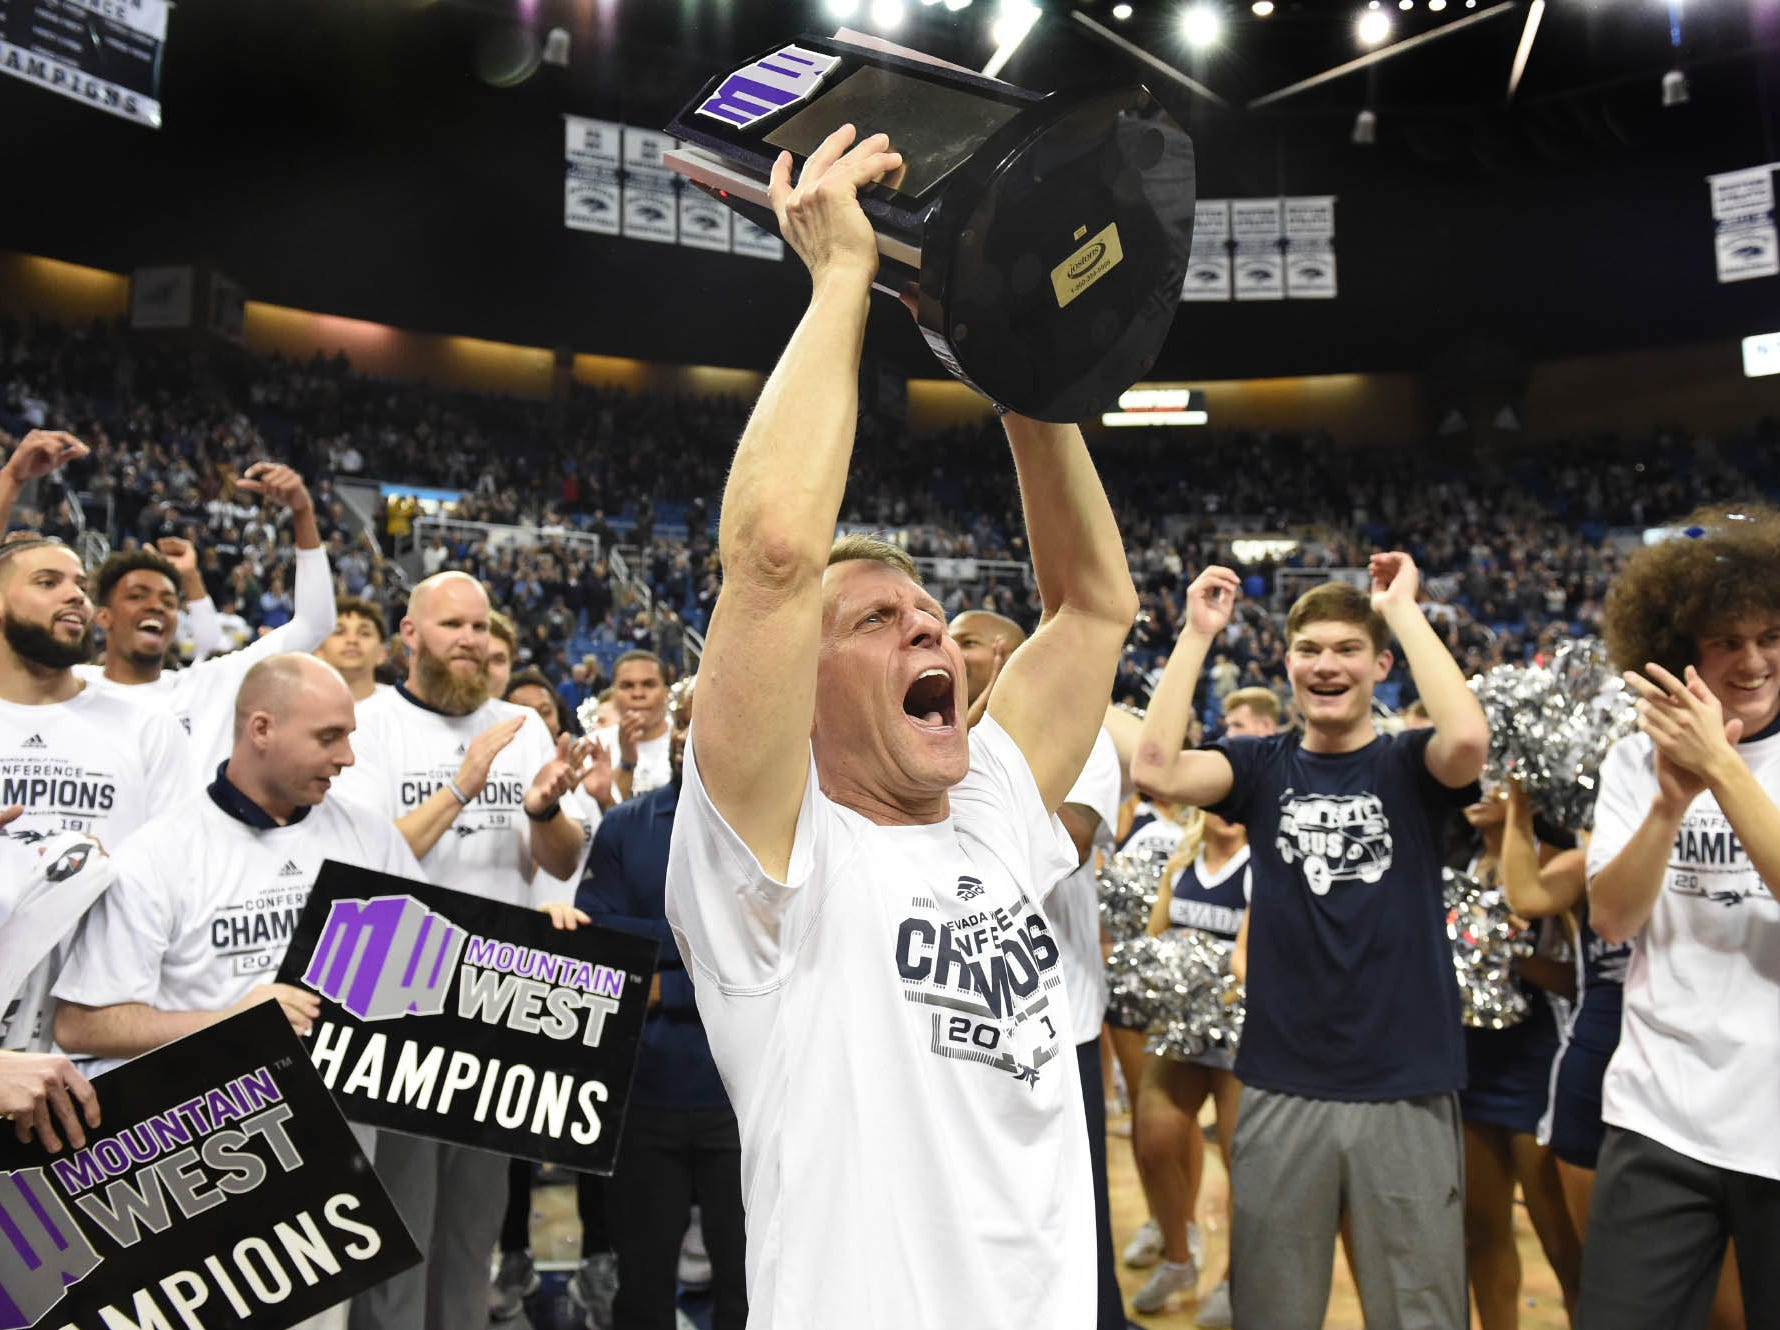 The Wolf Pack celebrates a Mountain West title after defeating San Diego State 81-53 on Senior Night at Lawlor Events Center on Saturday March 9, 2019.